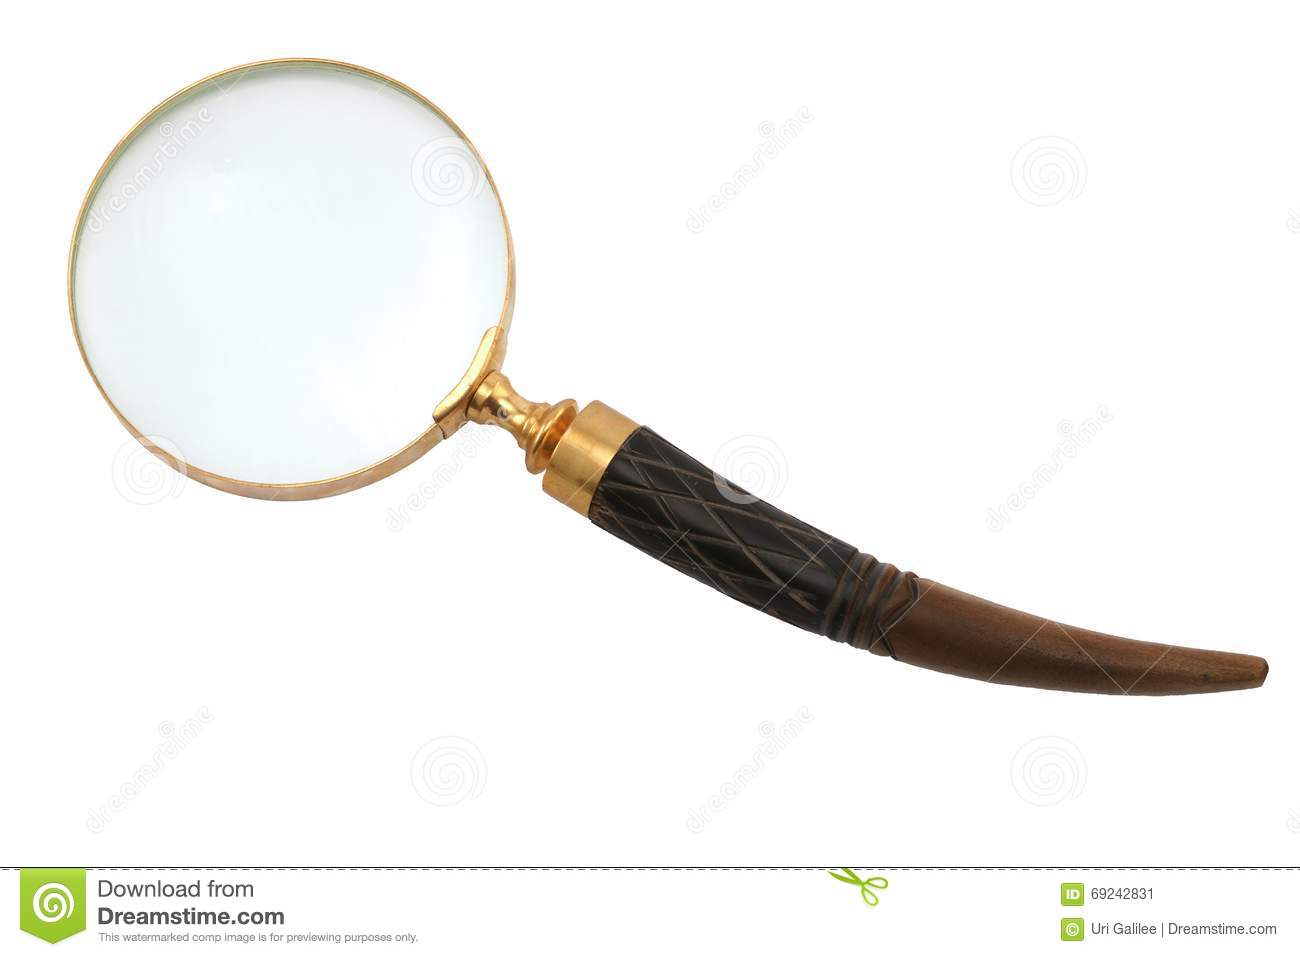 Download Antique-style Magnifying Glass Stock Image - Image of magnifier, magnify: 69242831